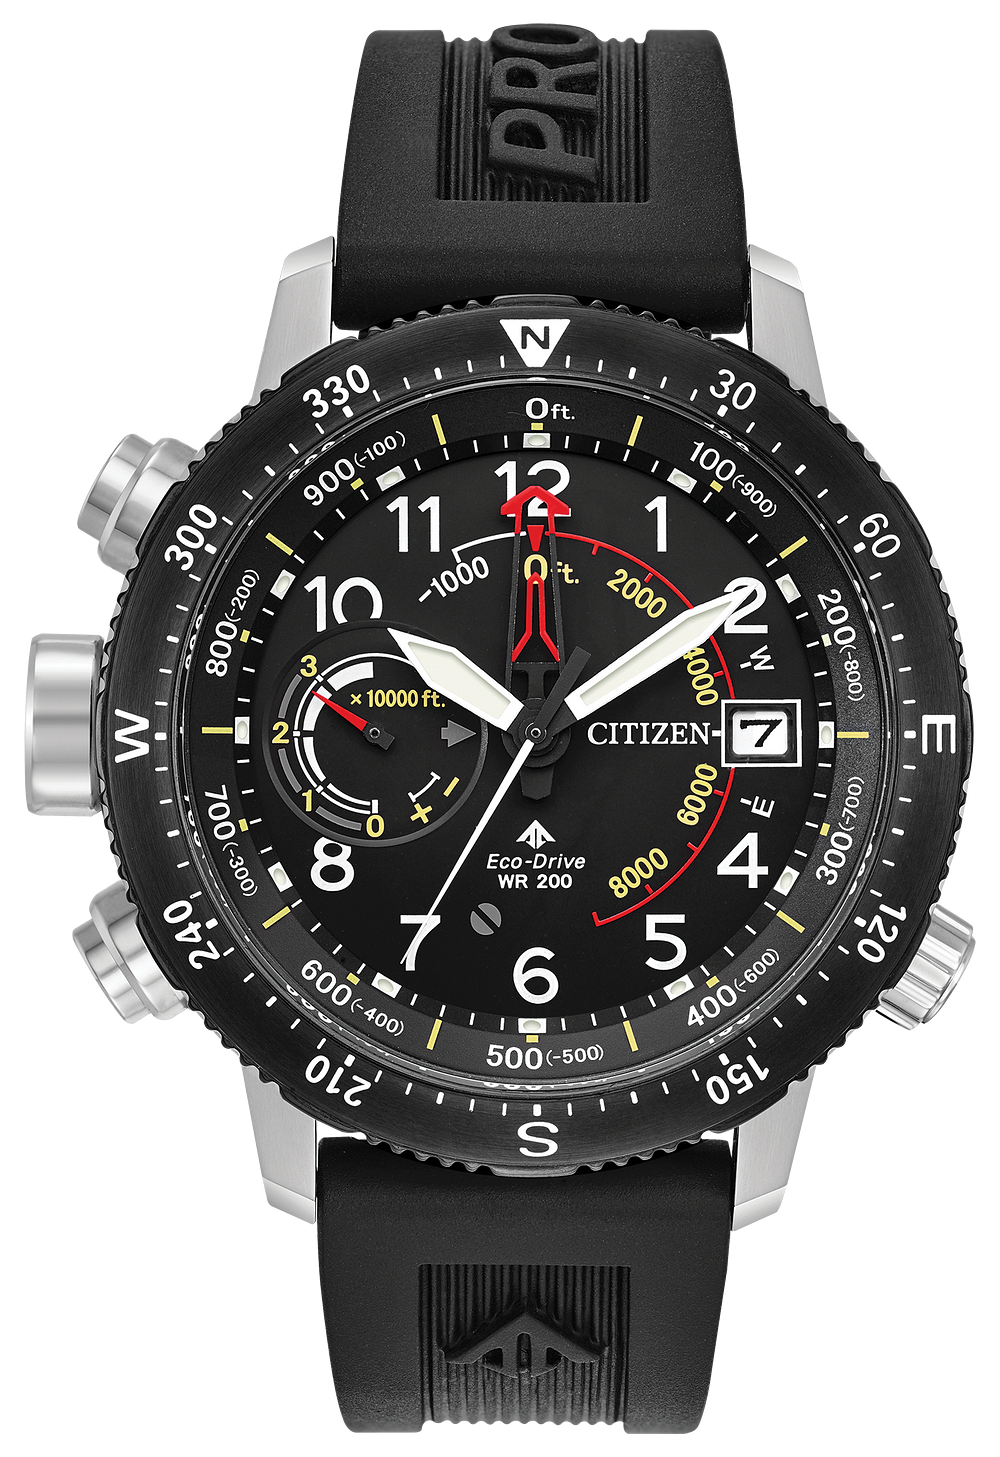 Men's Citizen Altichron Eco-Drive Watch